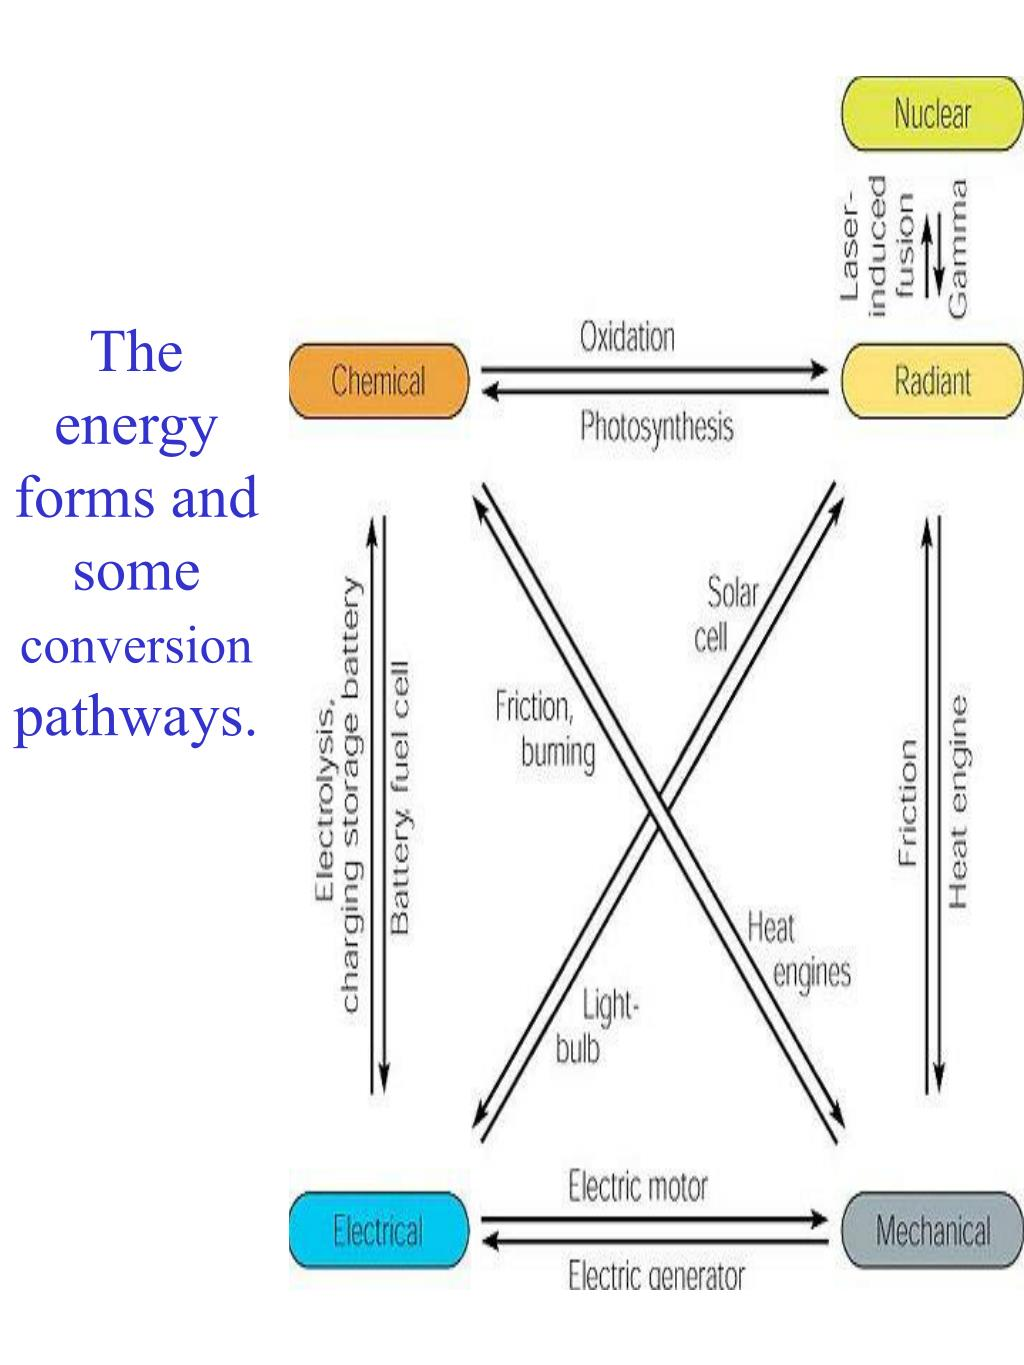 The energy forms and some